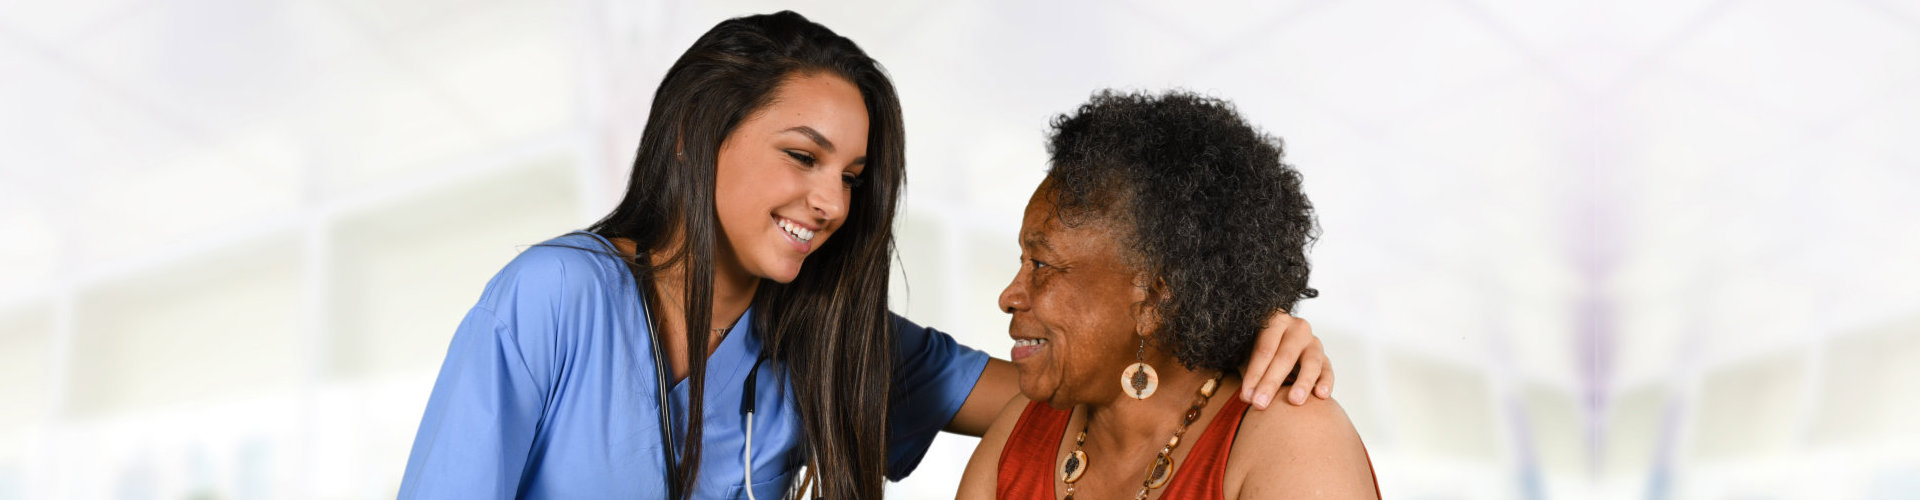 female nurse and senior woman smiling